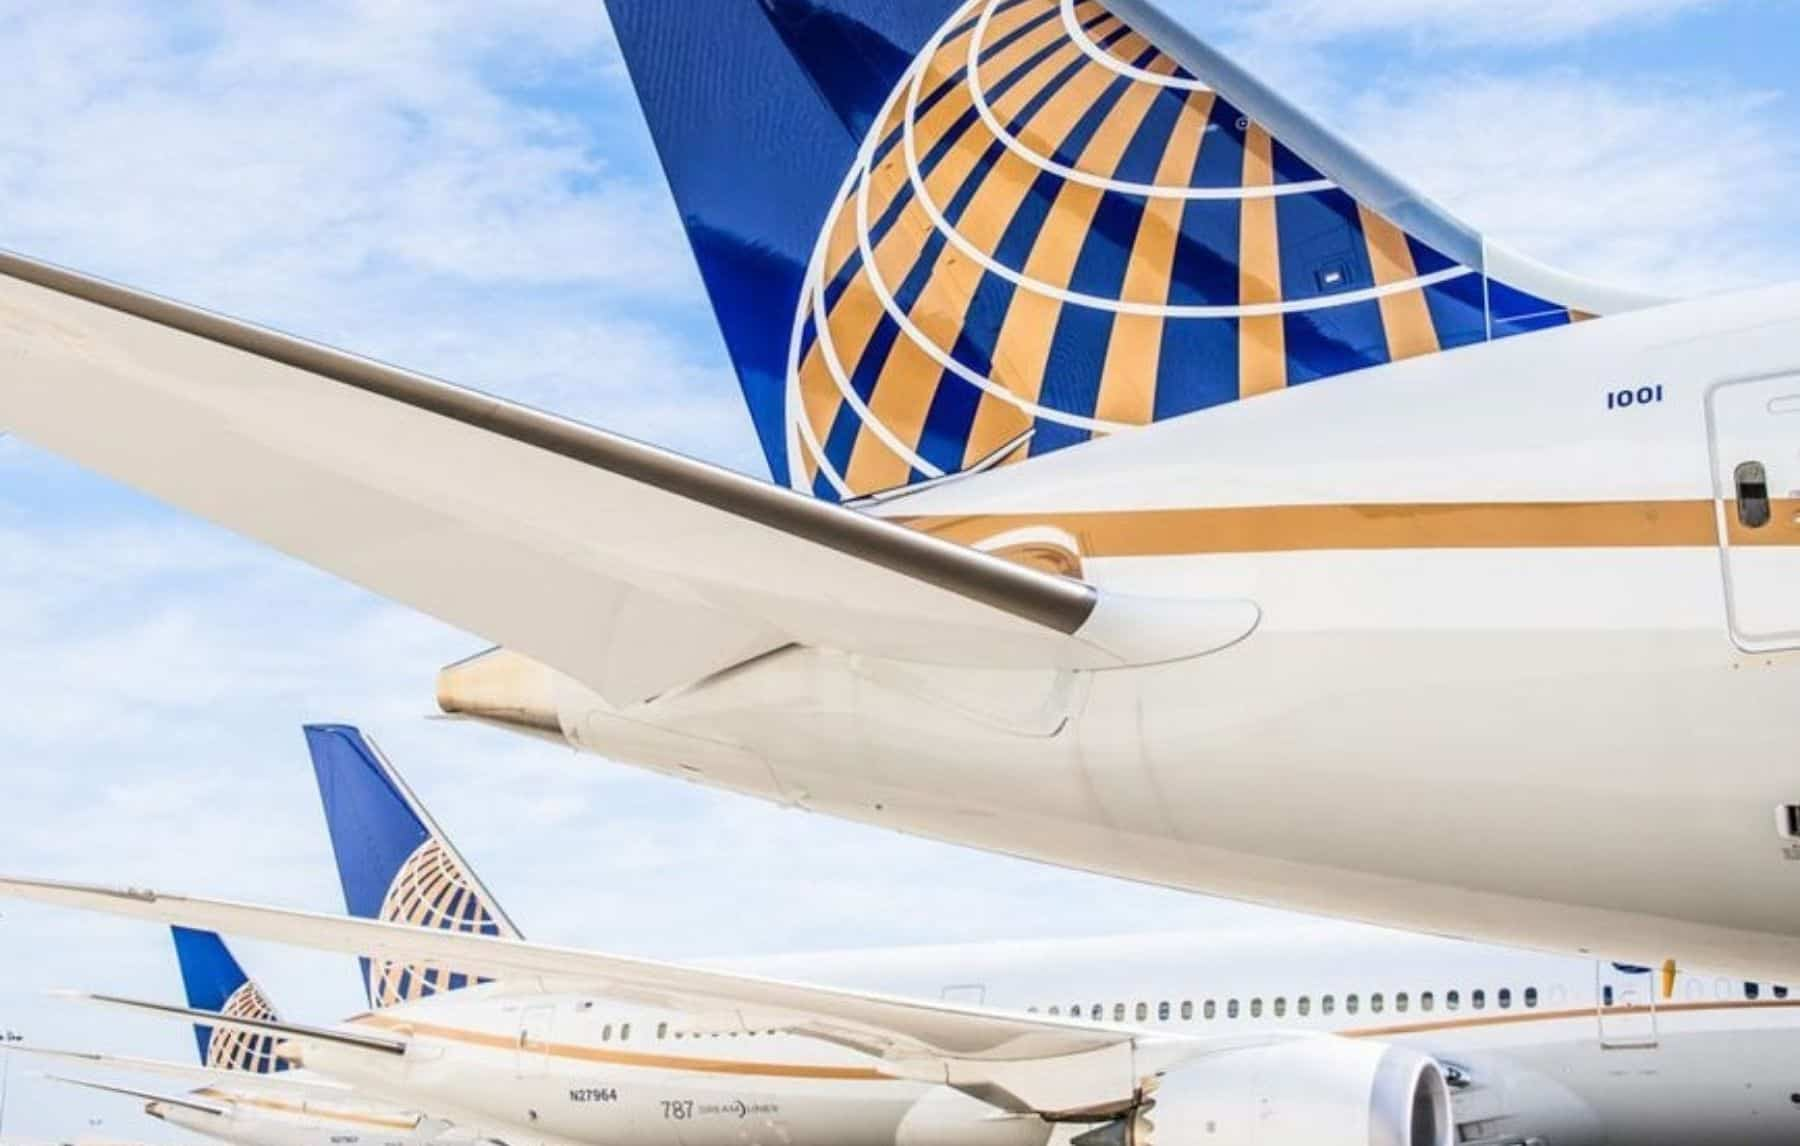 United Airlines Announces Eight New Routes and Increases Flights to 19 Destinations in the Caribbean, Central America and Mexico for Winter Sun-Seekers